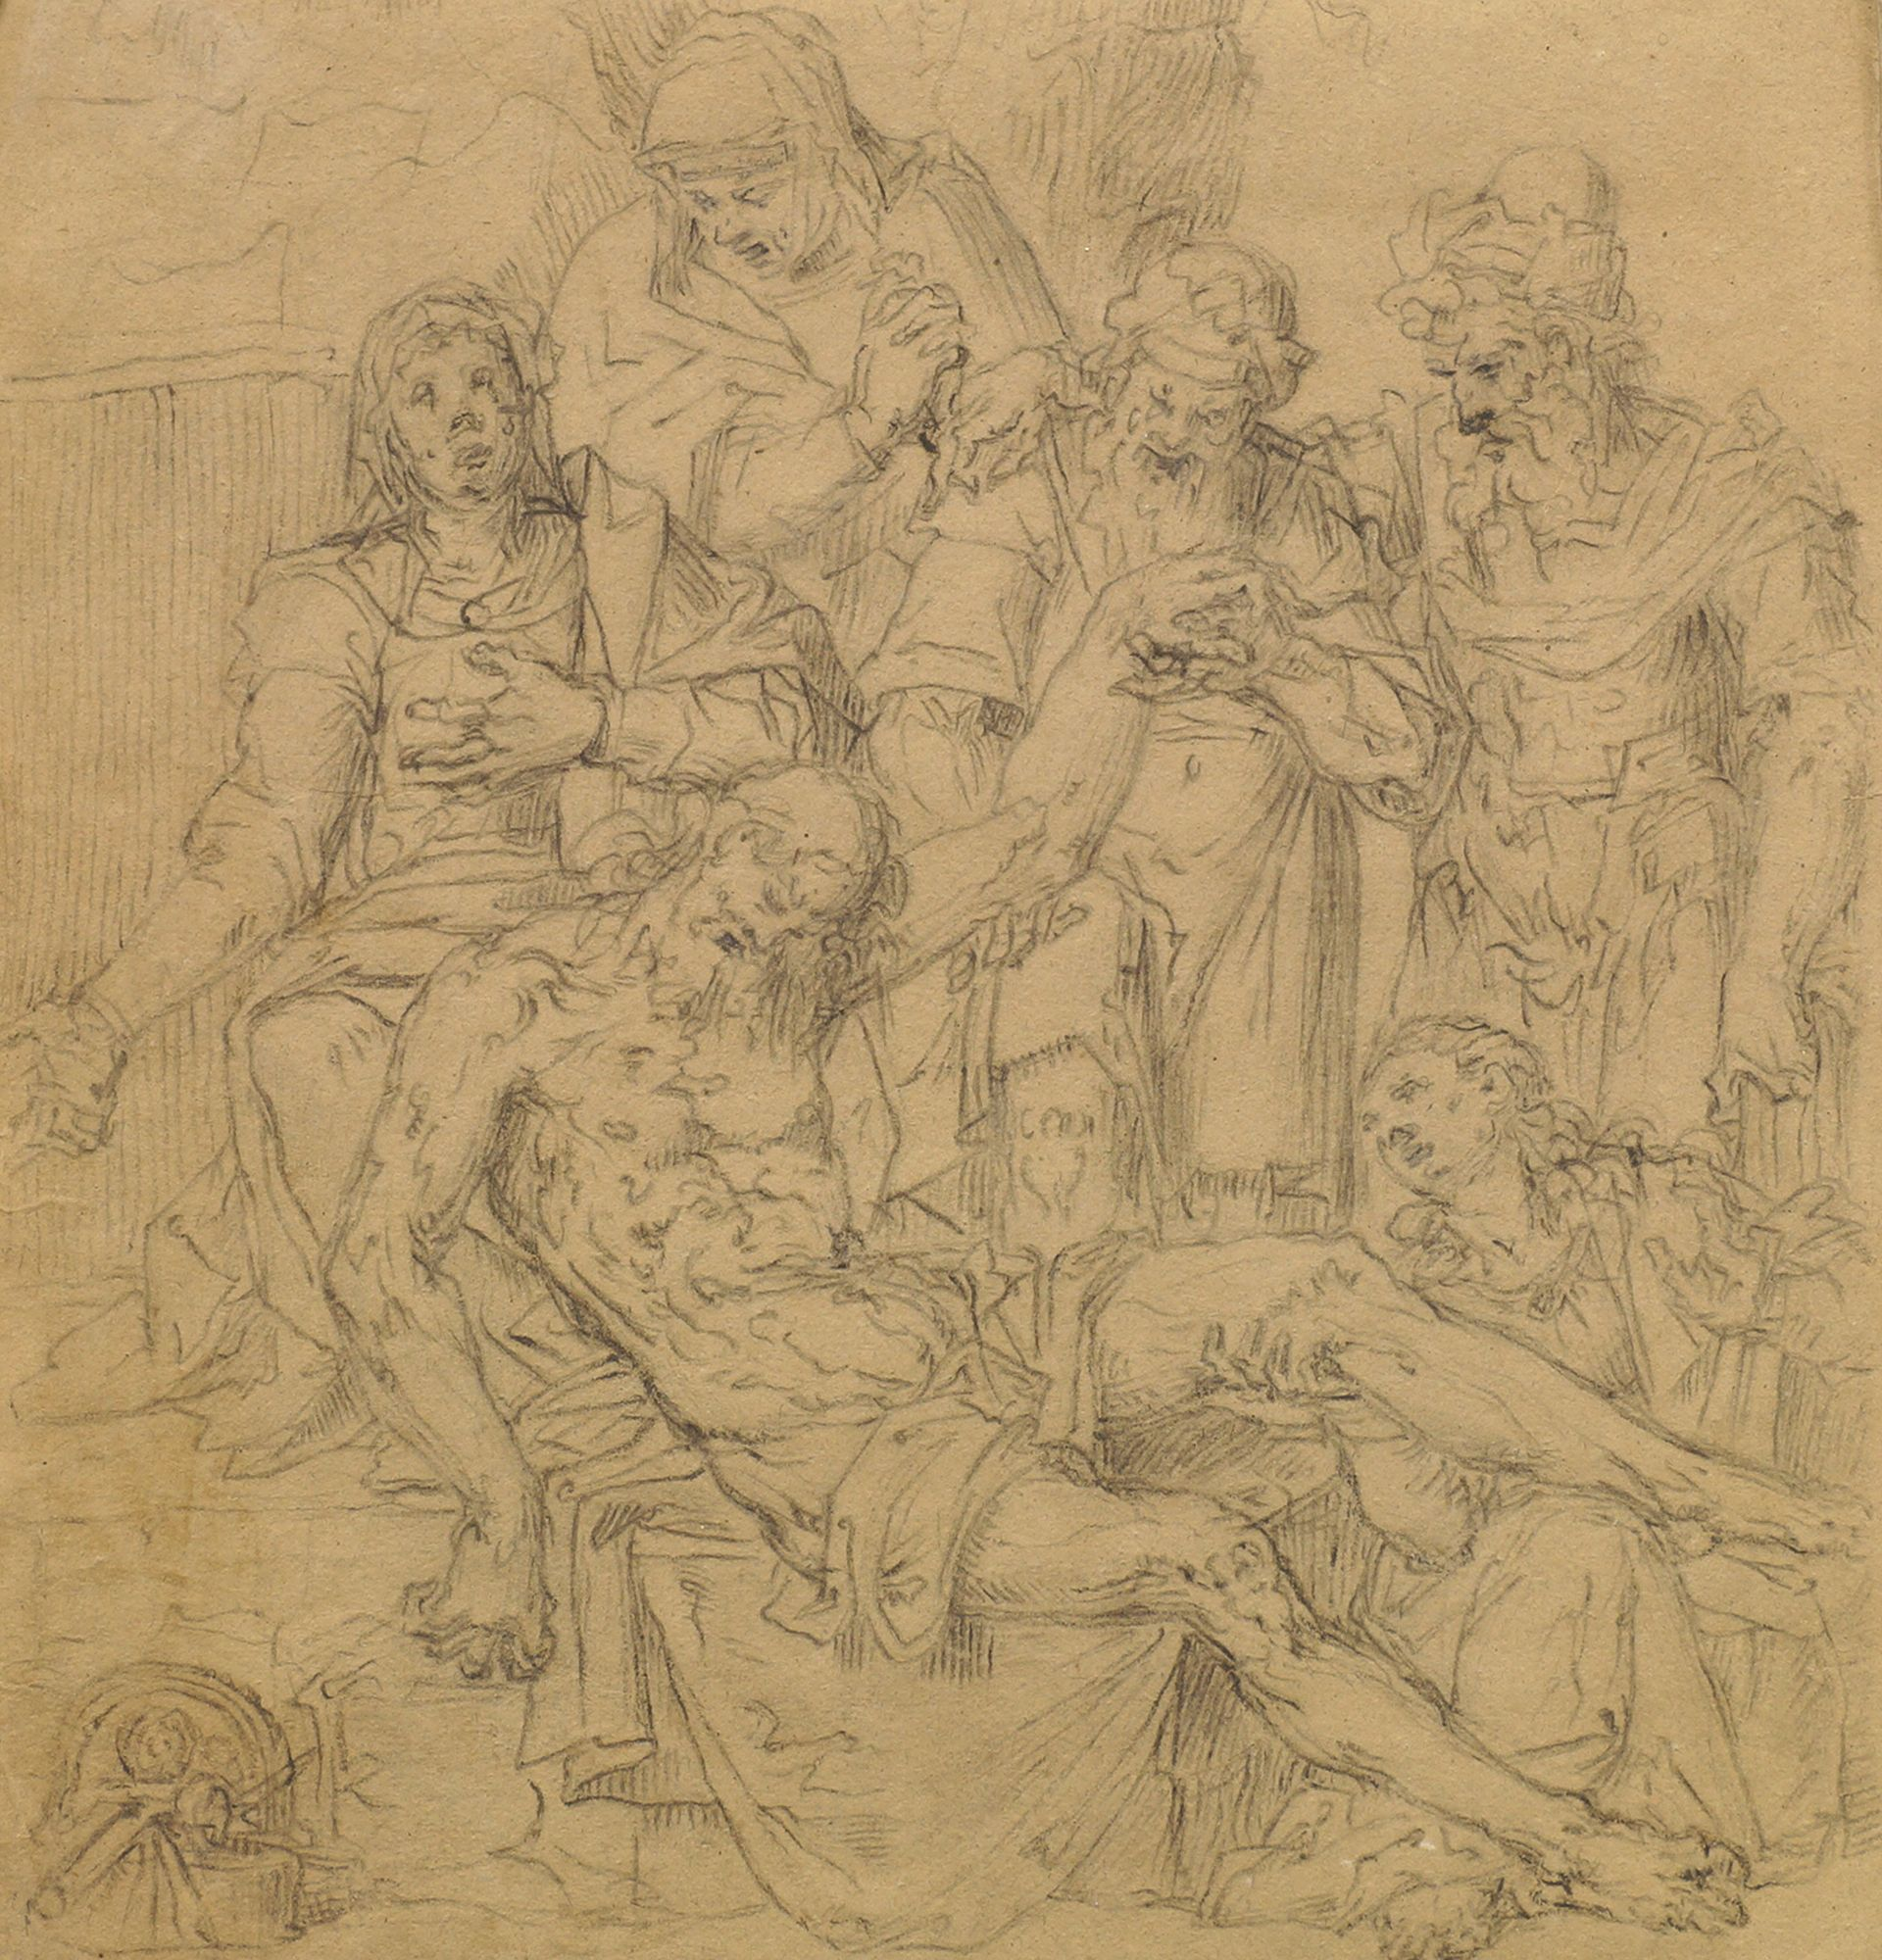 Lot 182 - Manner of Aurelio Luini, early 19th century- The Pieta; black chalk on coloured paper, 28x27cm,